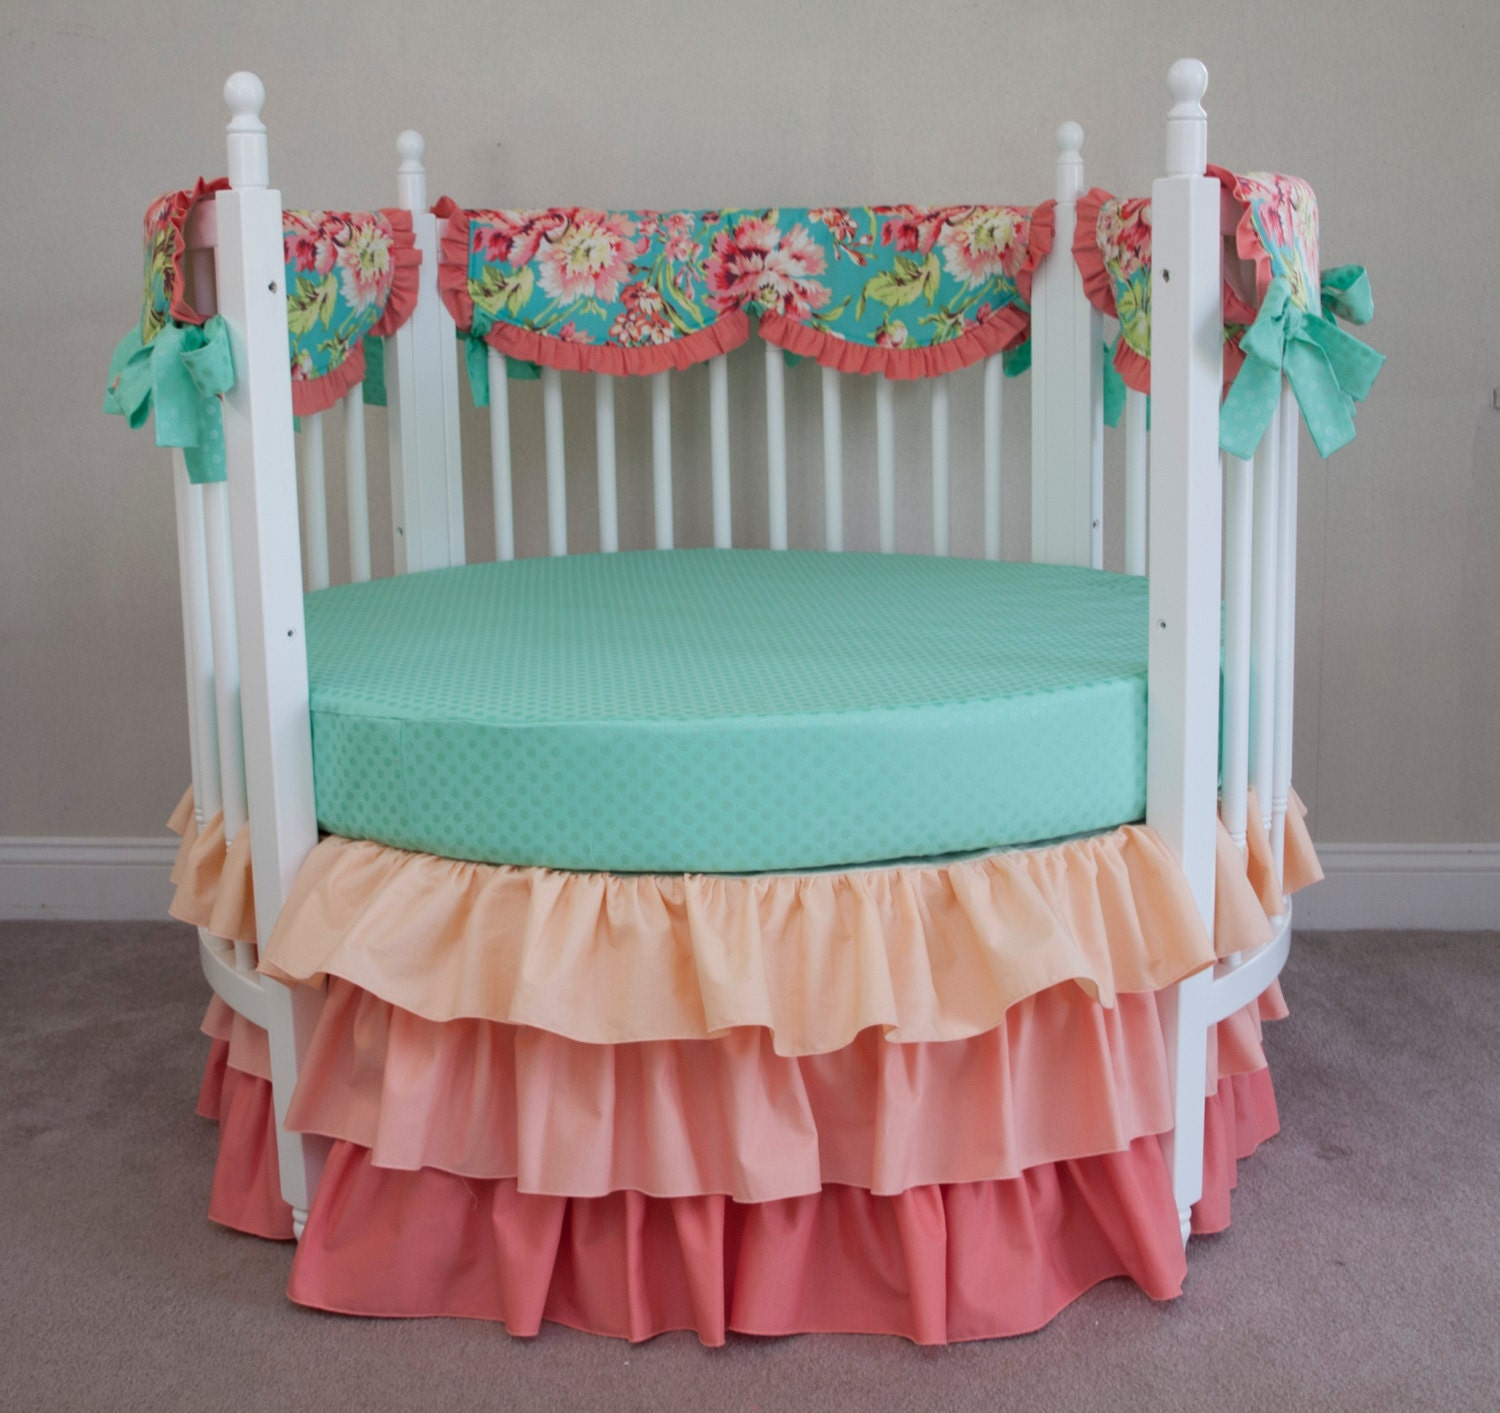 Floral Aqua Teal And Coral Baby Girl Round Crib Cot